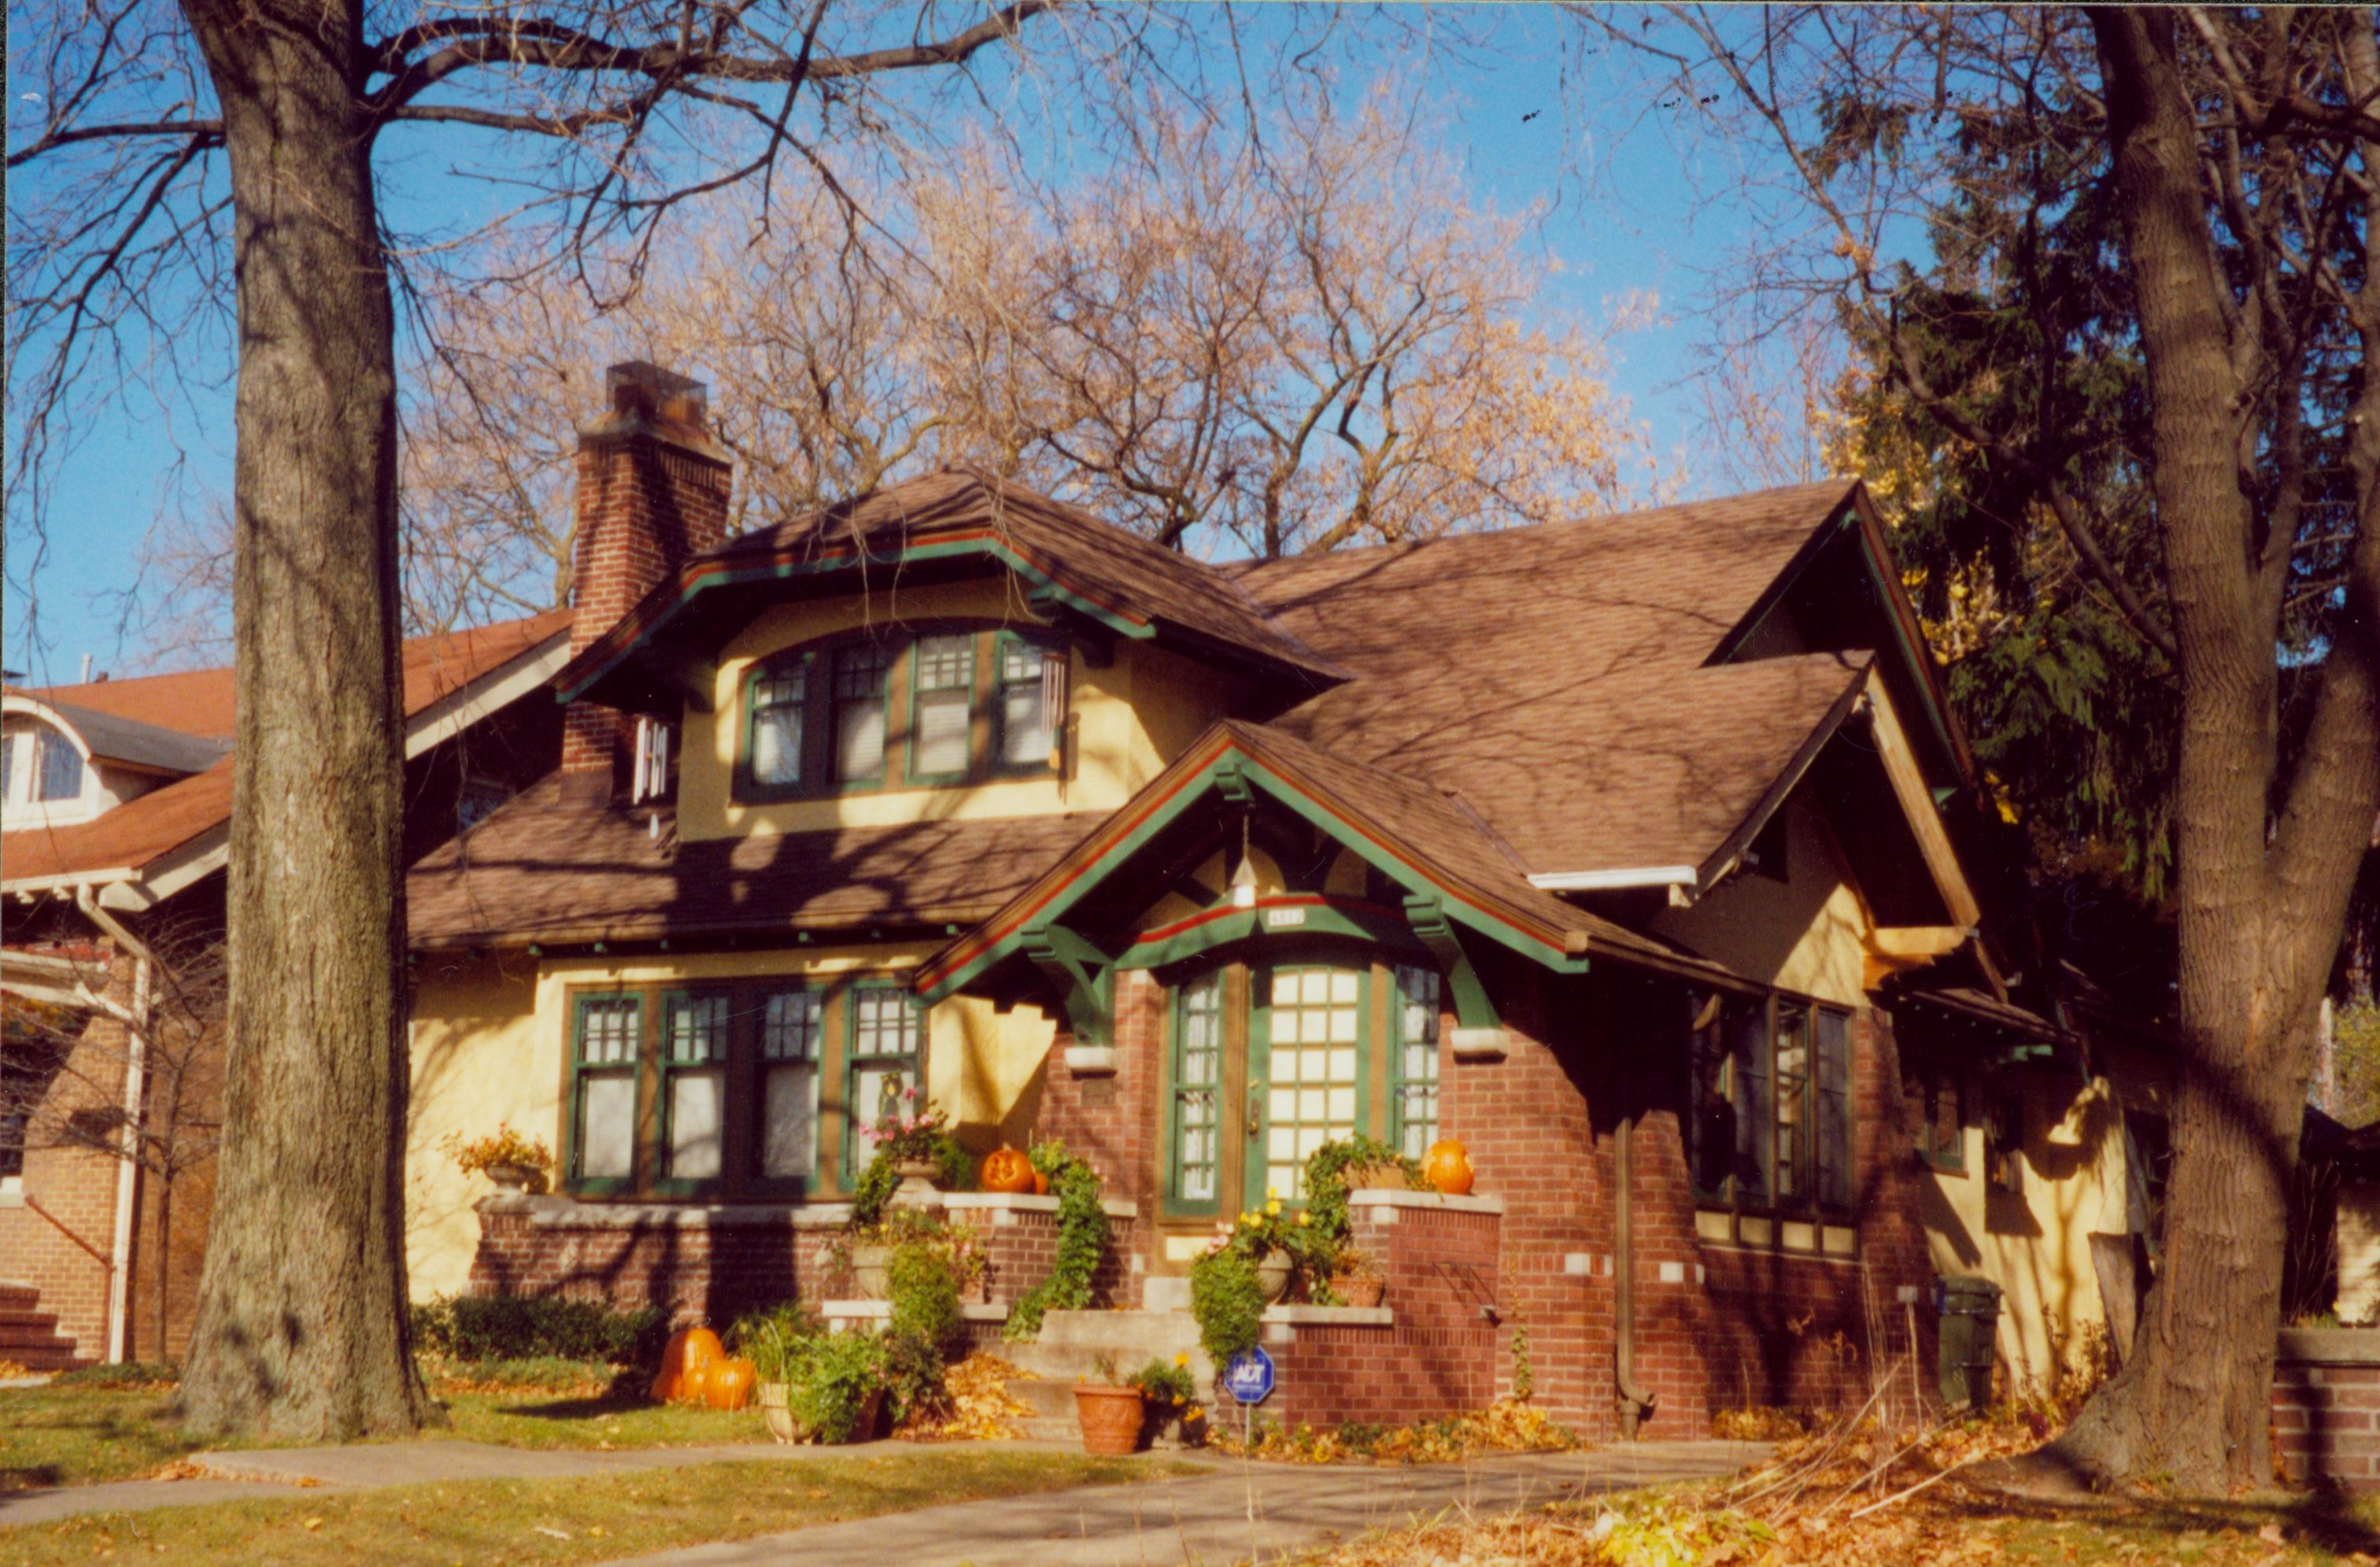 Many of the homes along W. Washington Boulevard form a nationally recognized historic district. This 1919 Craftsman bungalow is an example of the neighborhood's popular architectural style.